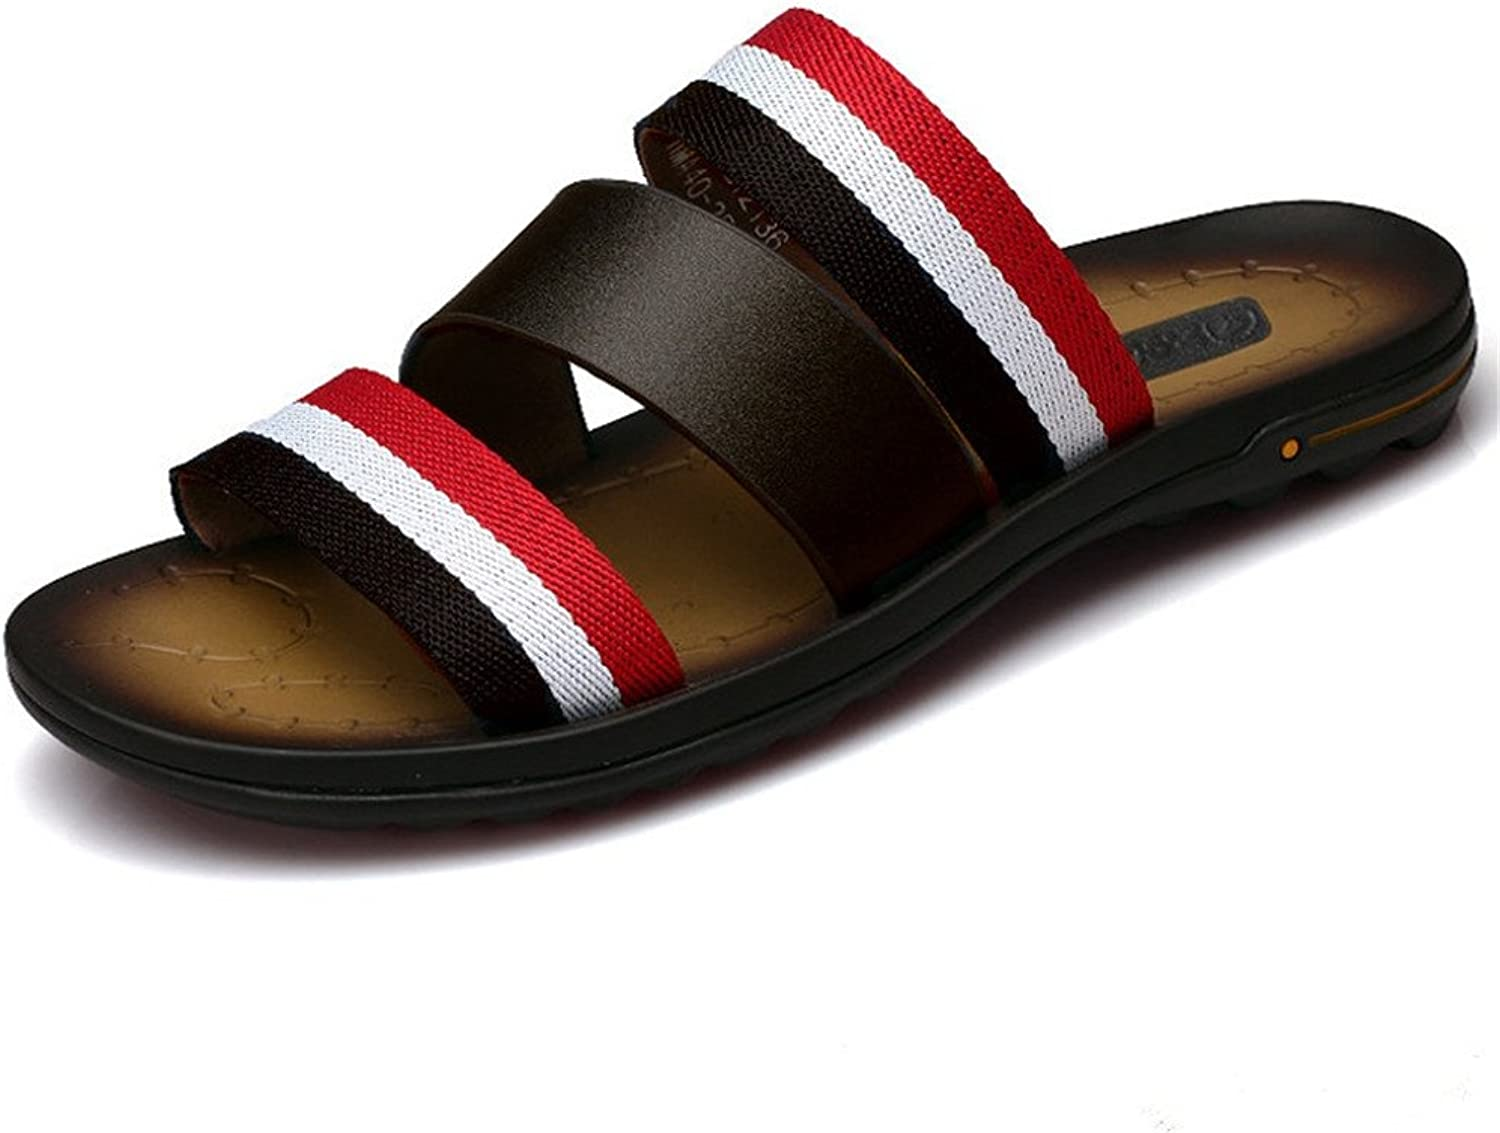 MSFS Men Leather Beach Slipper Classic Open Toe Sandals colorful Size 38To 43